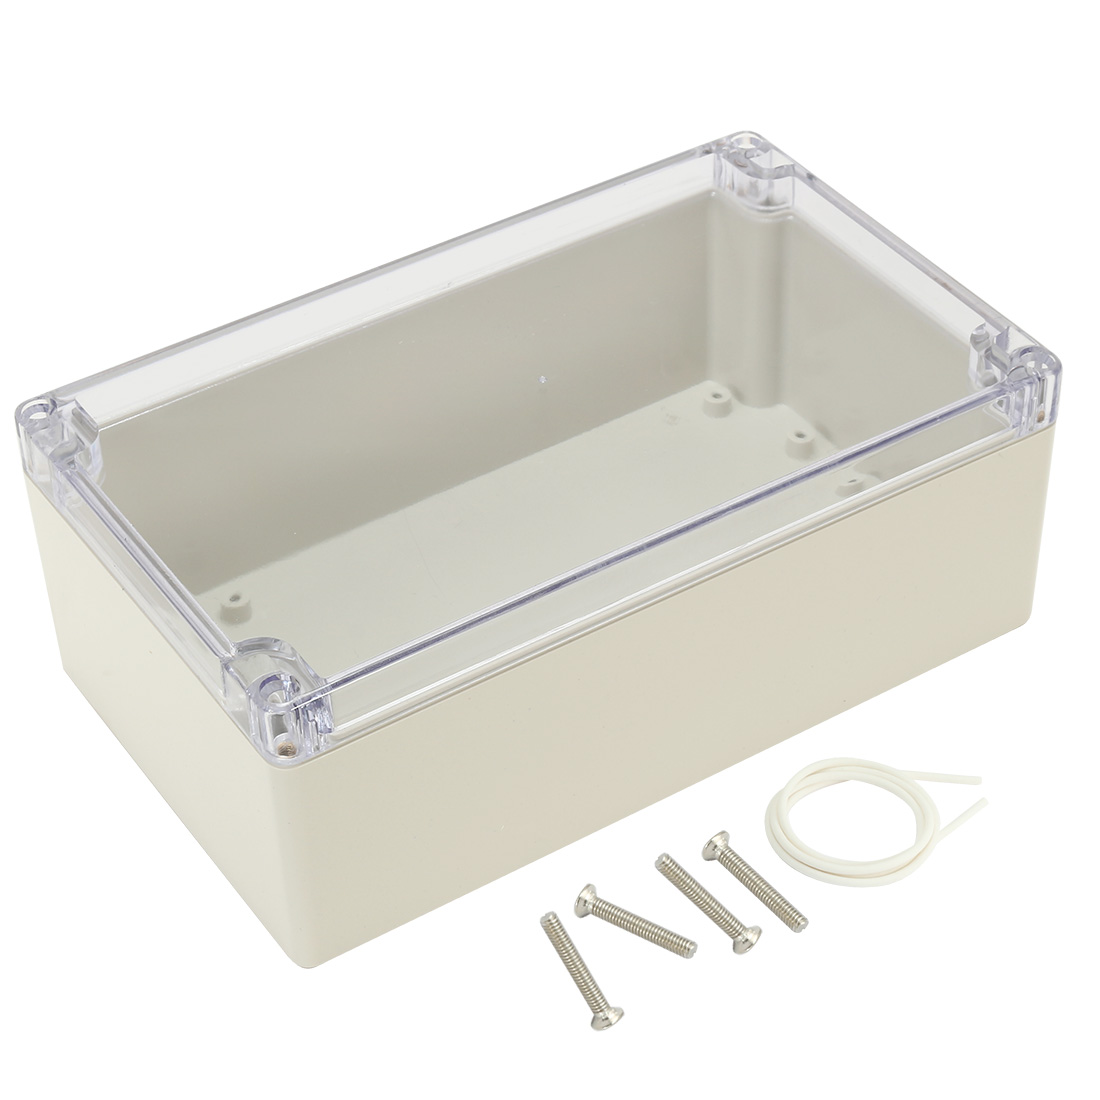 "7.9""x4.7""x2.9""(200mmx120mmx75mm) ABS Junction Box Universal Project Enclosure w PC Transparent Cover"